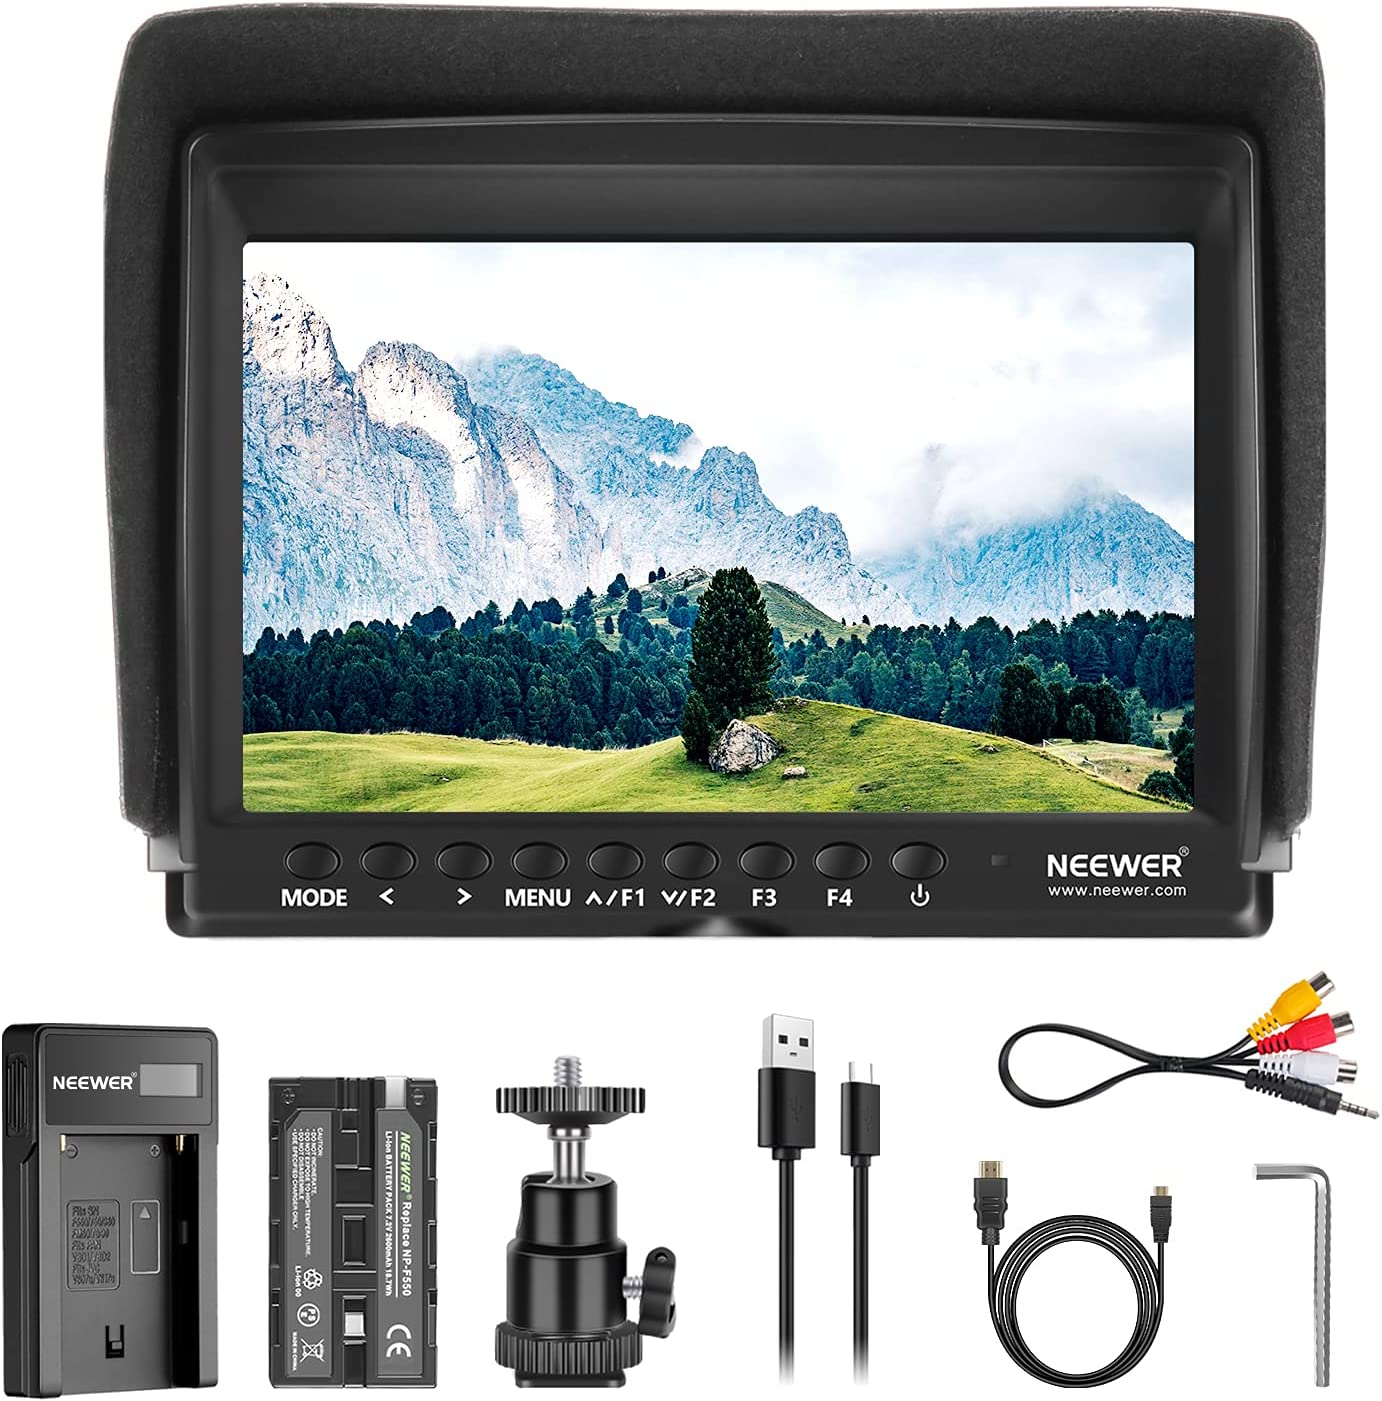 Neewer F100 7 Inch Camera Field Video half Monitor HD IPS Slim Assist Safety and trust